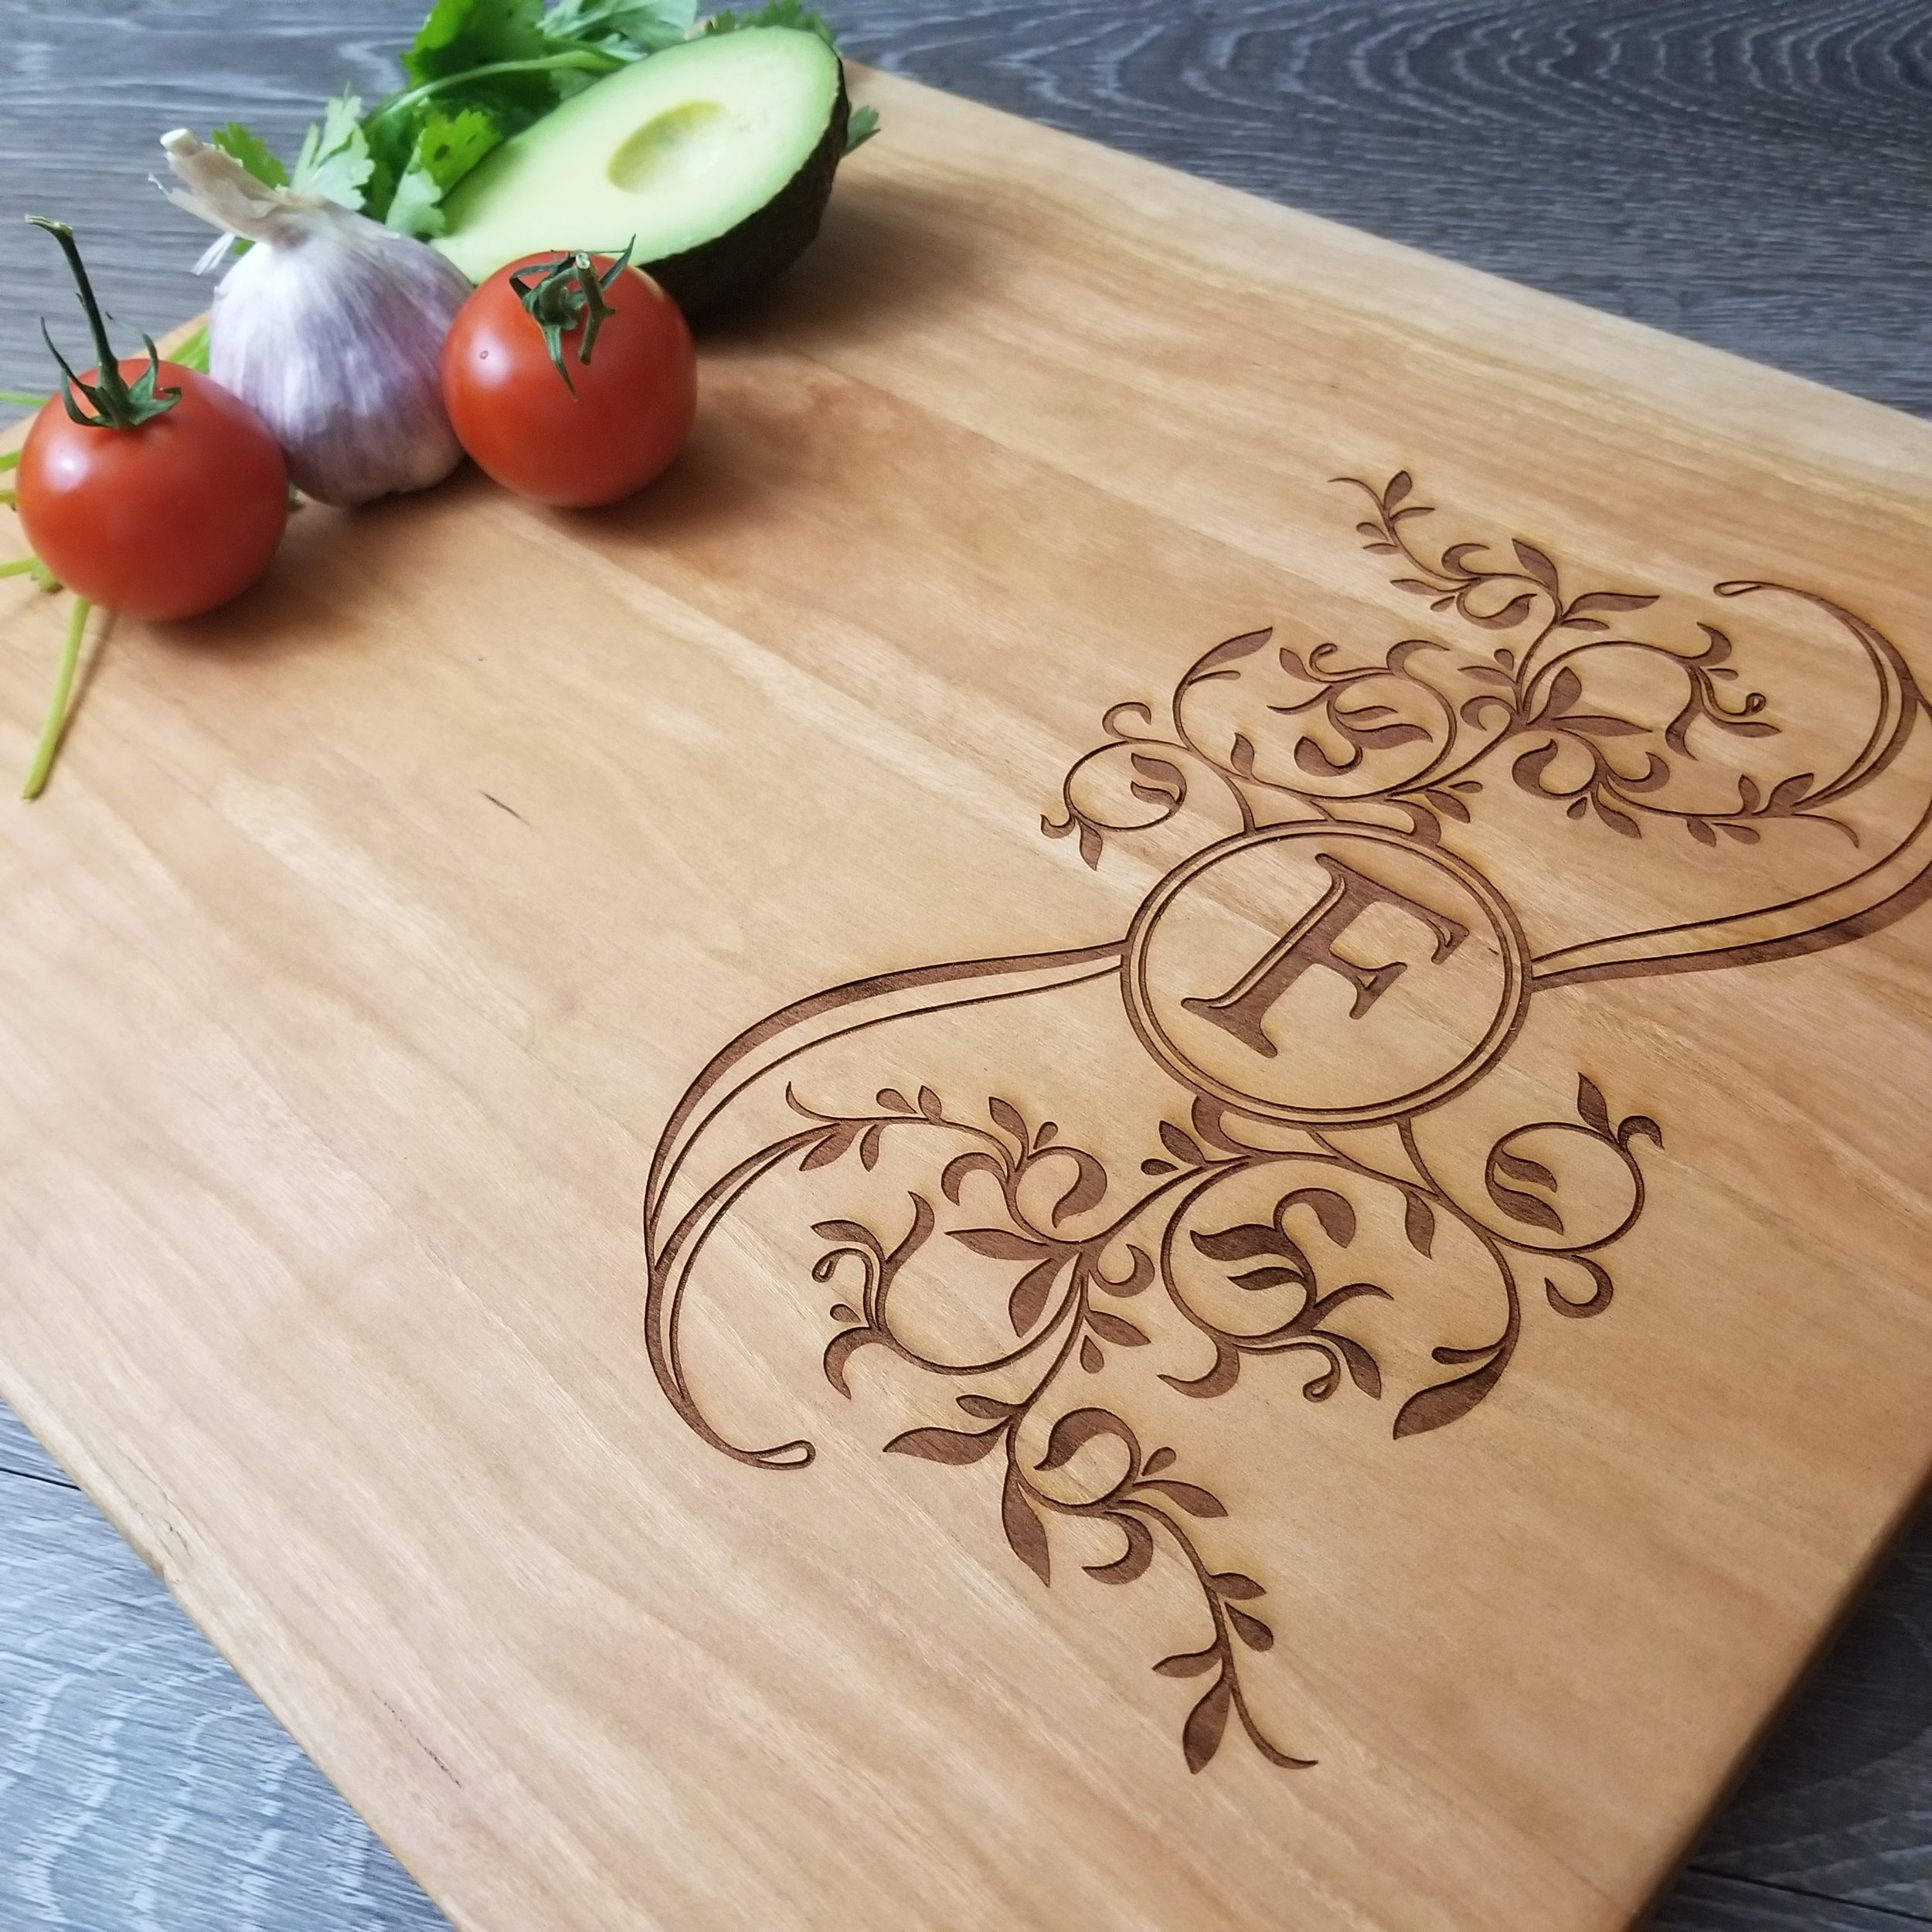 Personalized Cutting Boards